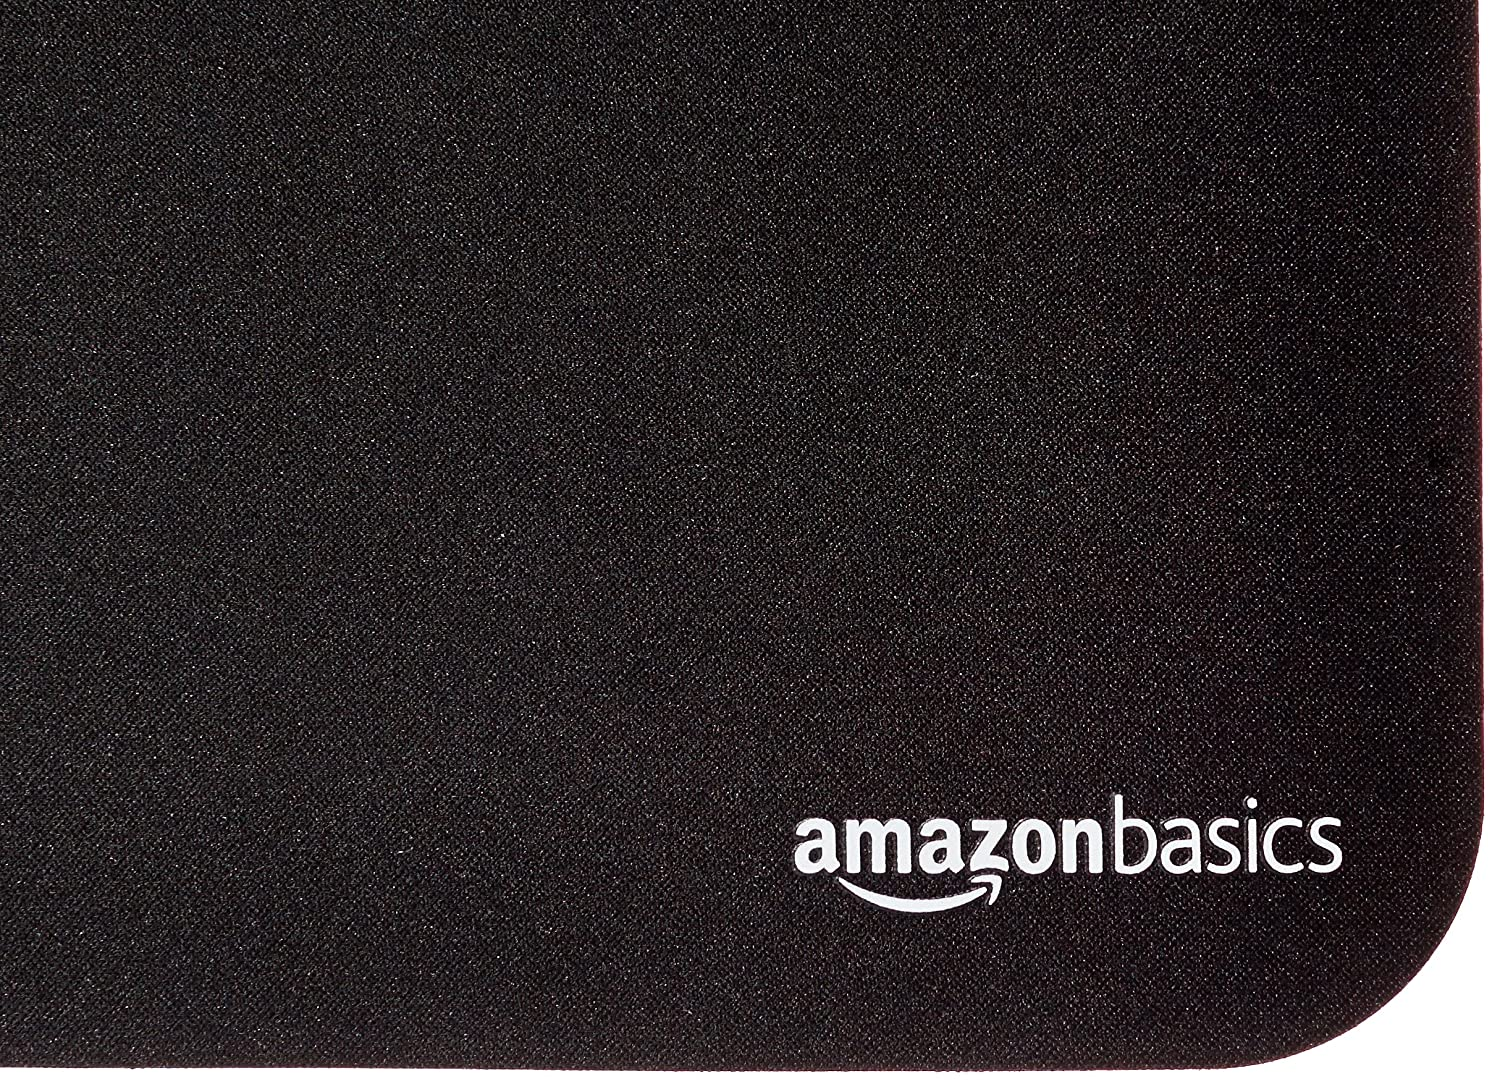 Amazonbasics Mini Gaming Mouse Pad Computers Accessories Steelseries Qck Black W 250 X L 210 H 2mm